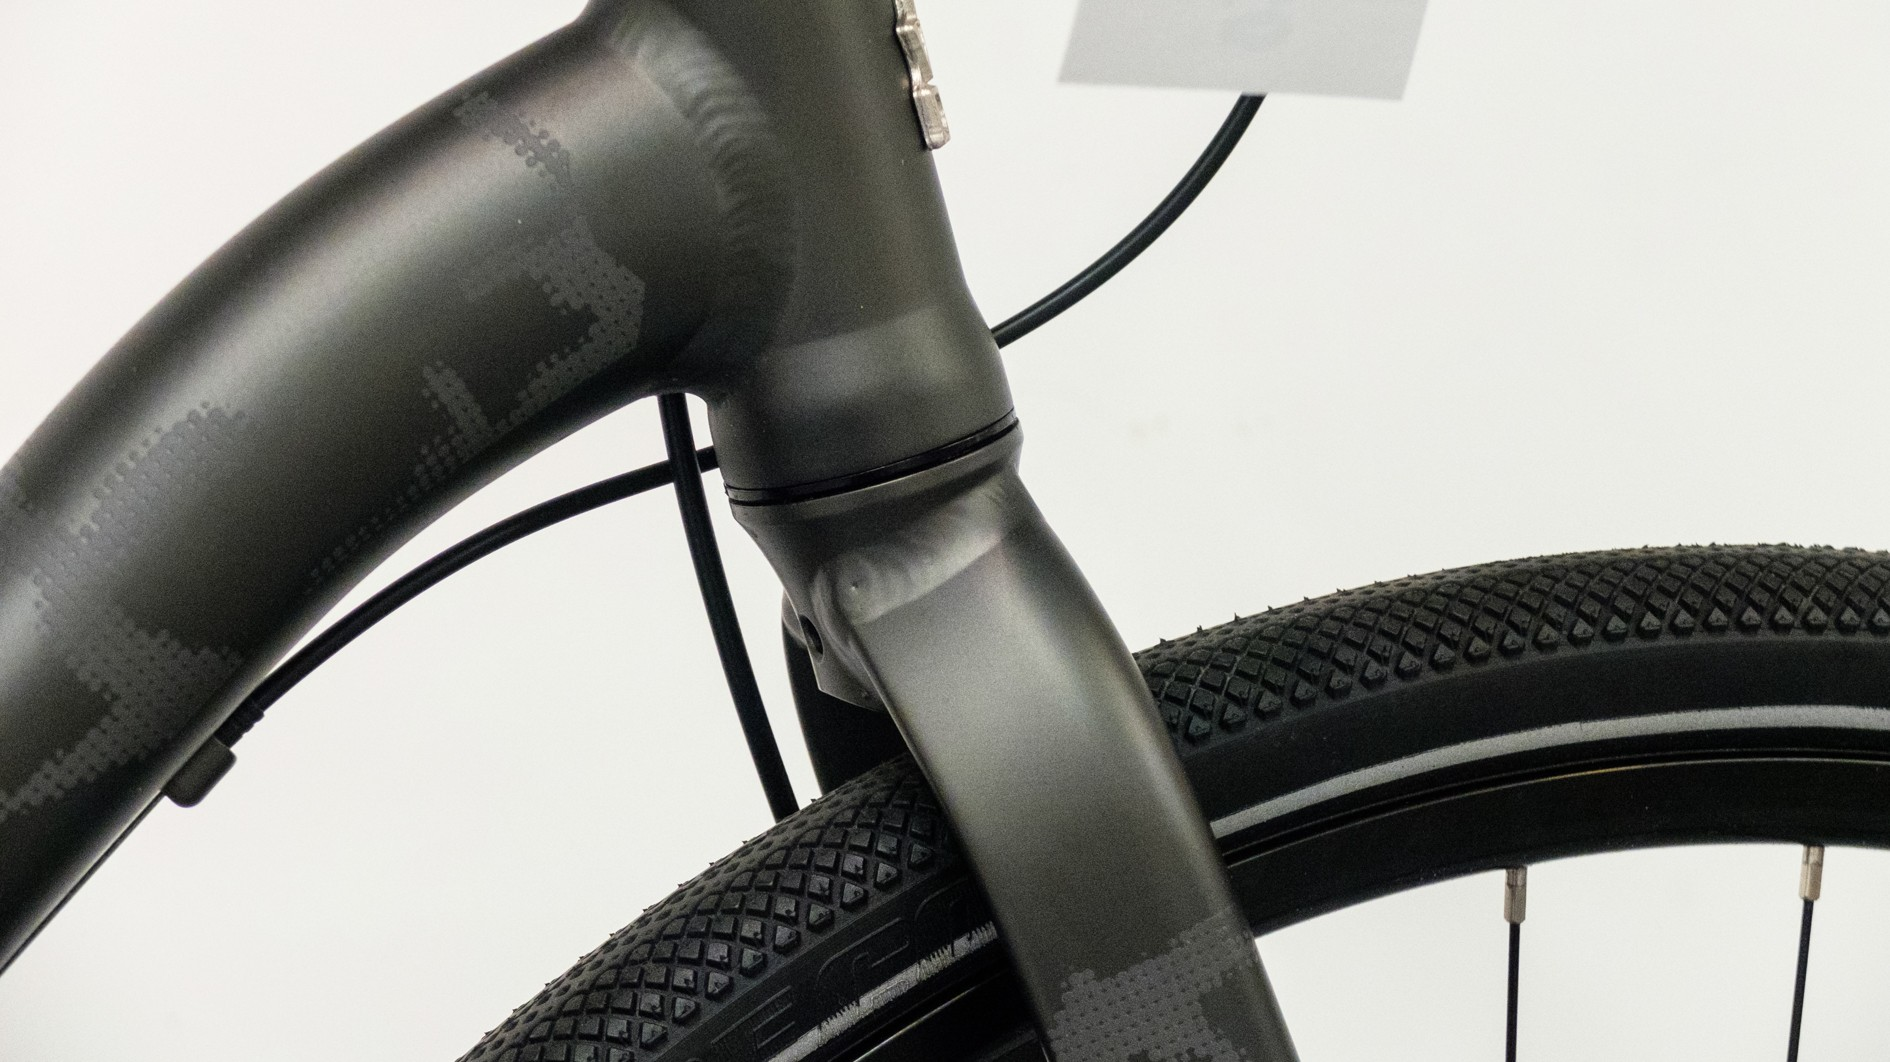 The head tube junction looks similar to a number of Voodoo's bikes